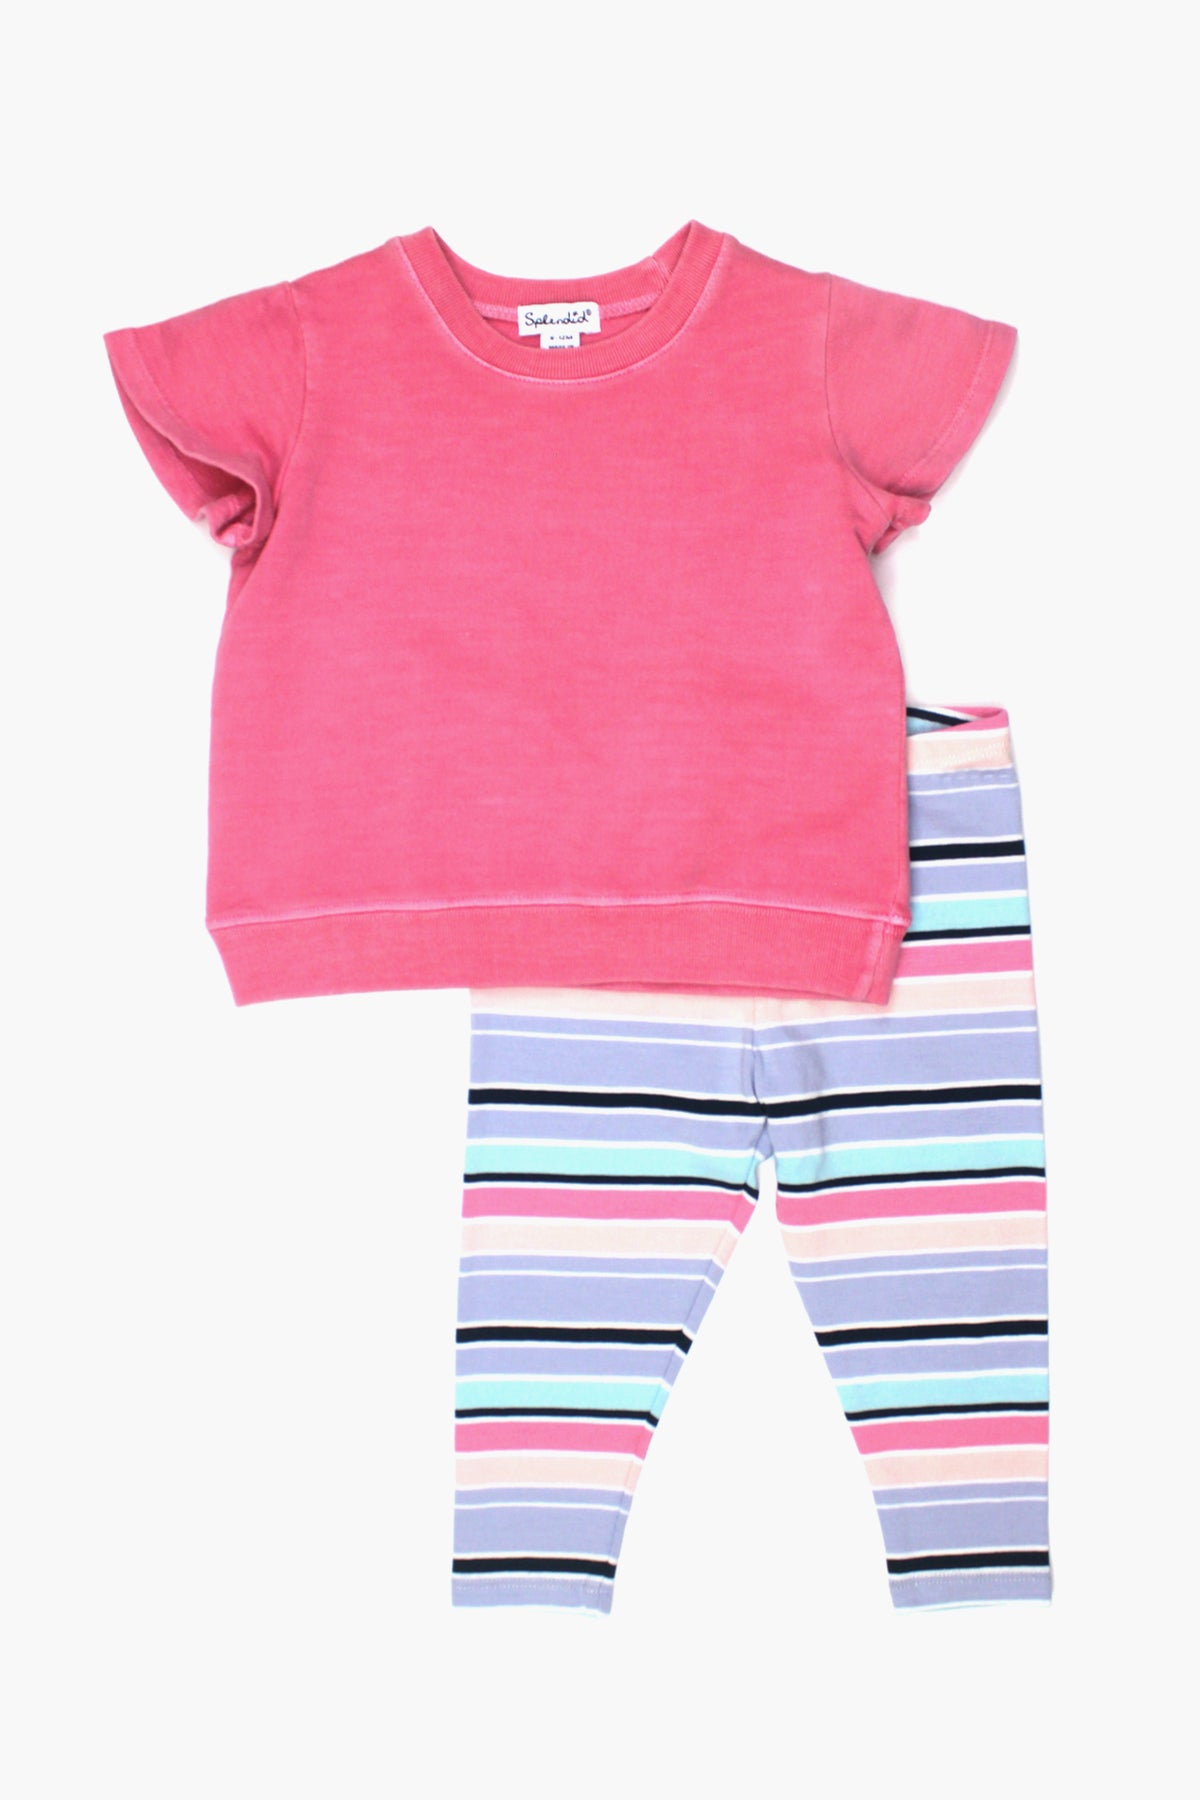 Splendid Stripe Girls 2-Piece Set